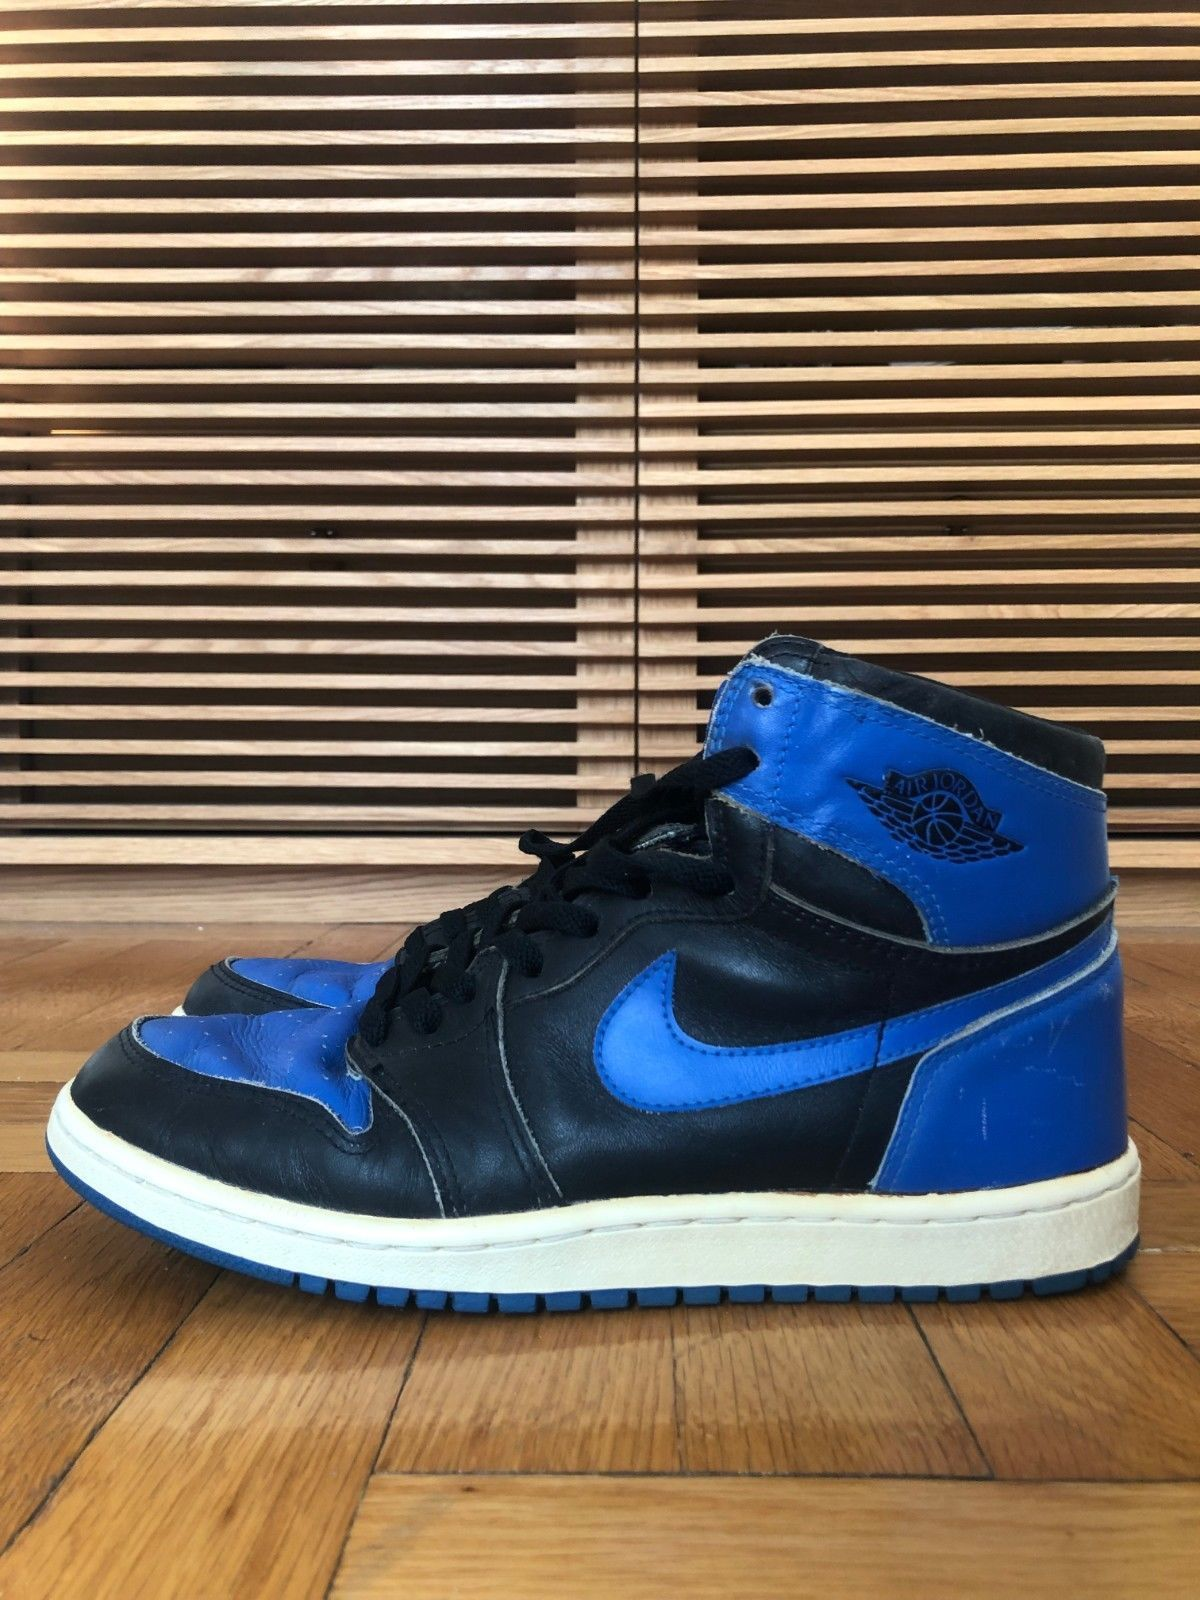 d319eadbf11b Details about 1985 Original Nike Air Jordan I 1 Black Royal Blue OG ...